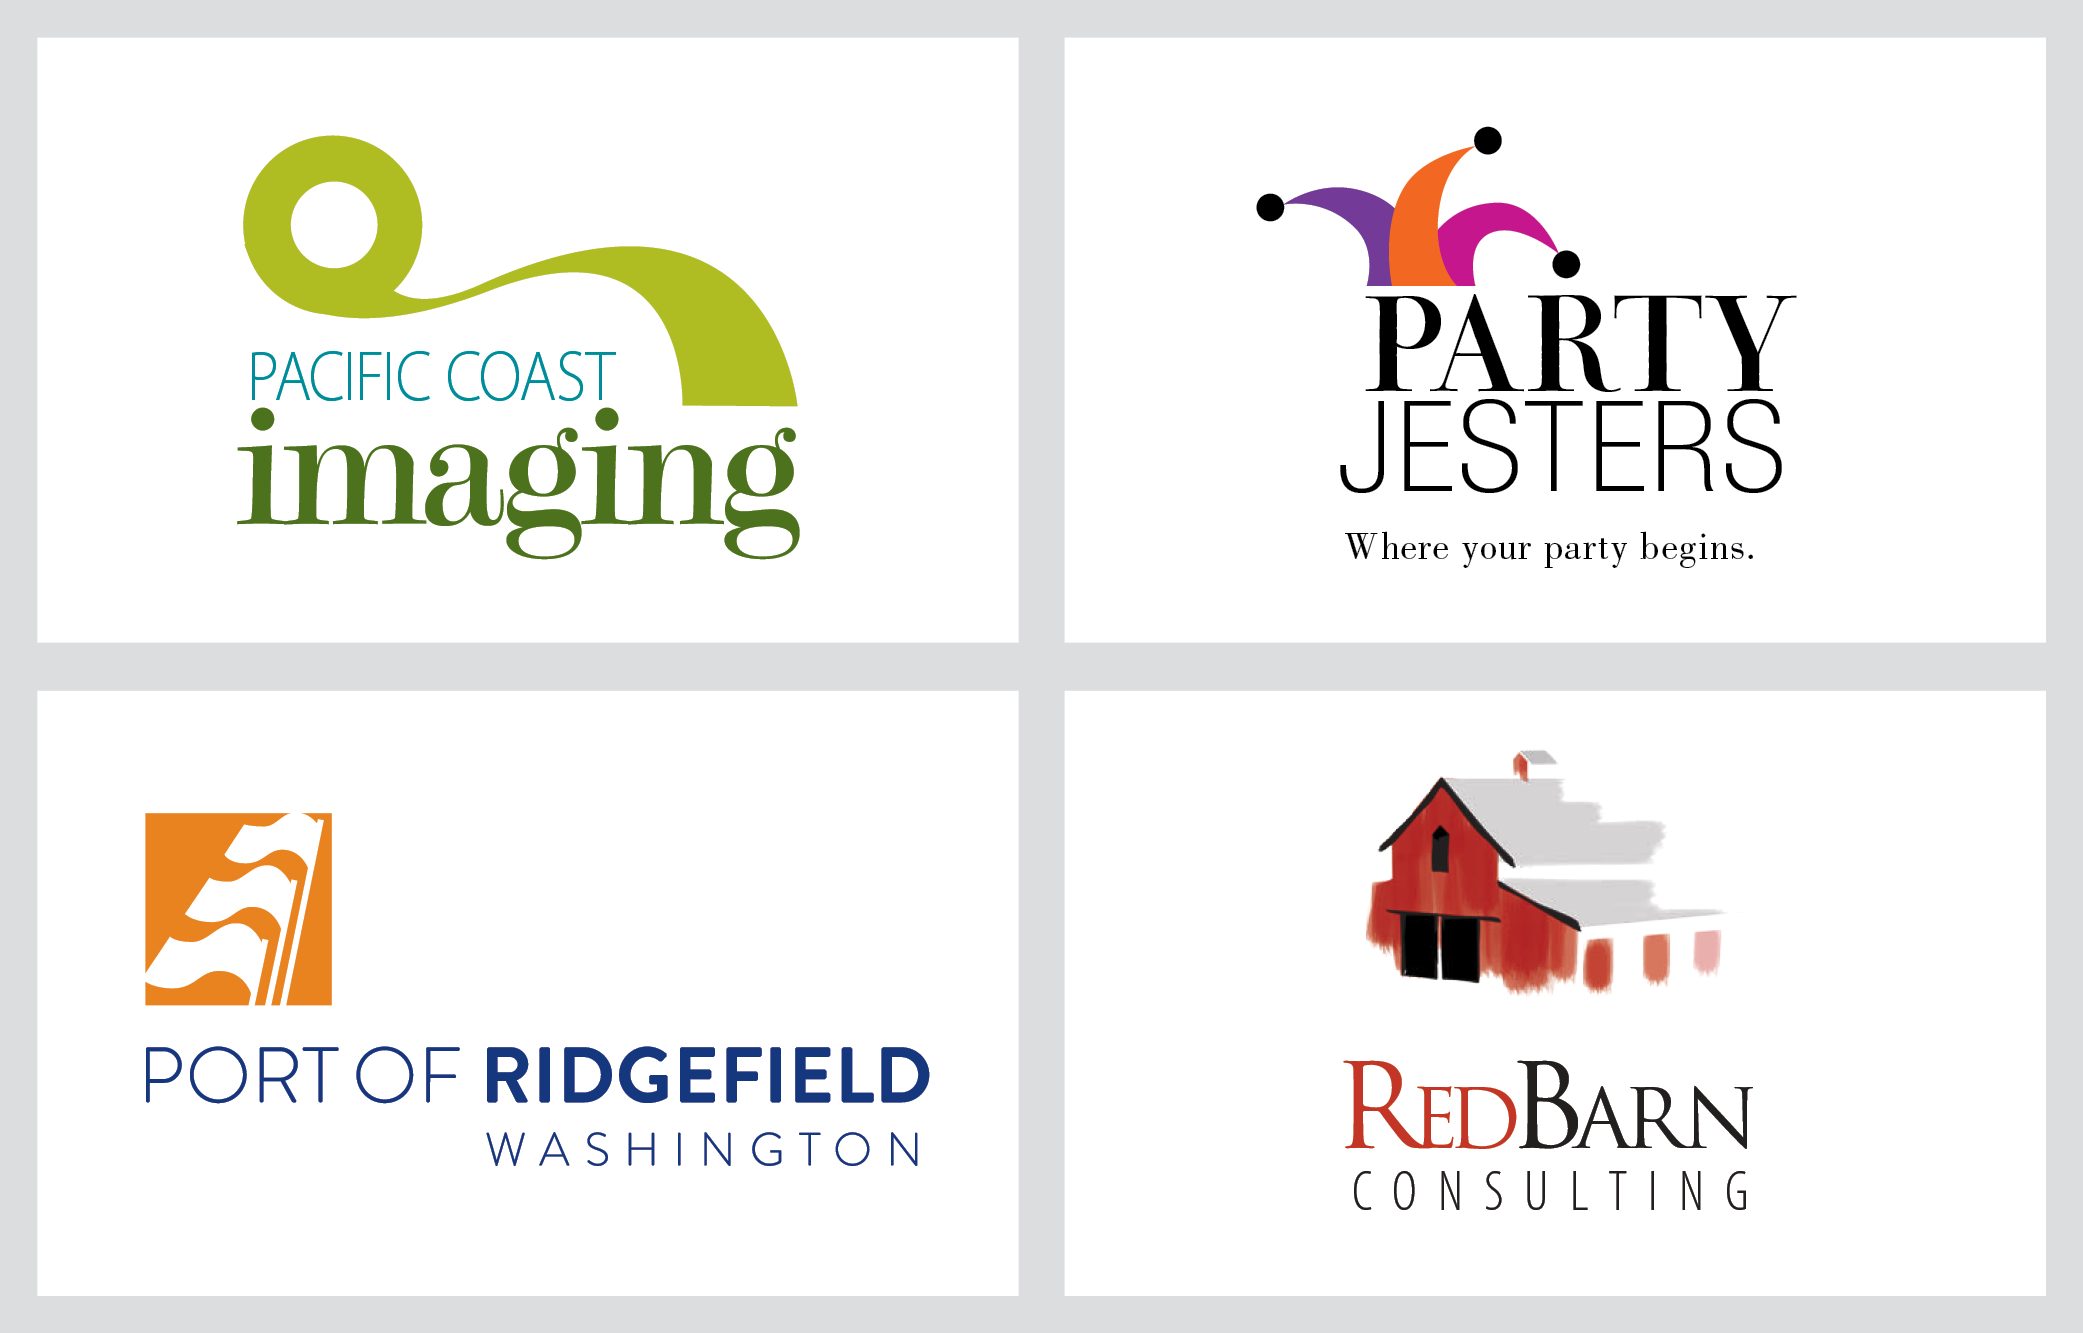 pacific coast imaging, party jesters, port of ridgefield, red barn logos